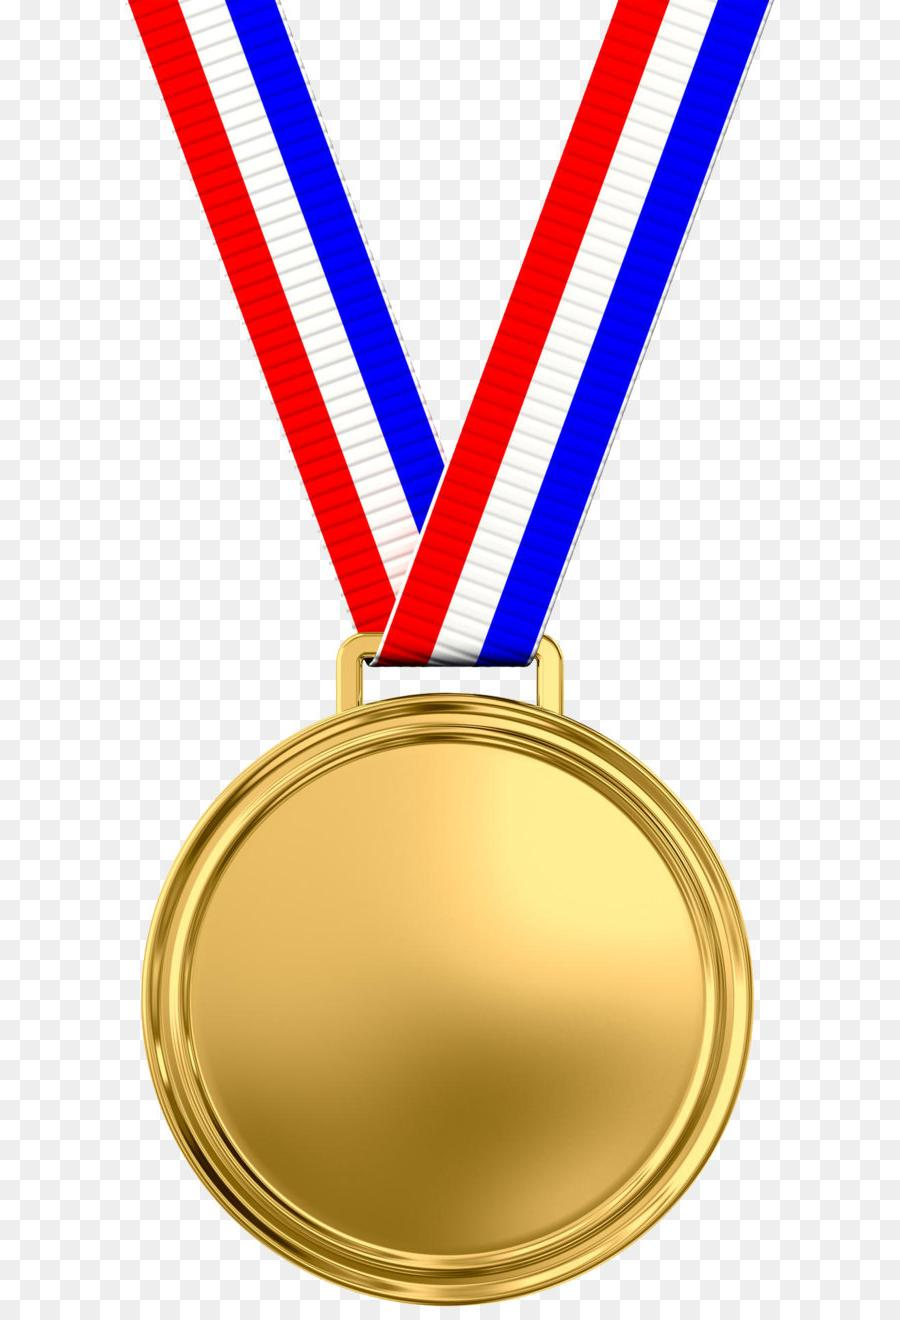 900x1320 Superb Medal Clip Art Image Vector Graphic, Image And Icons